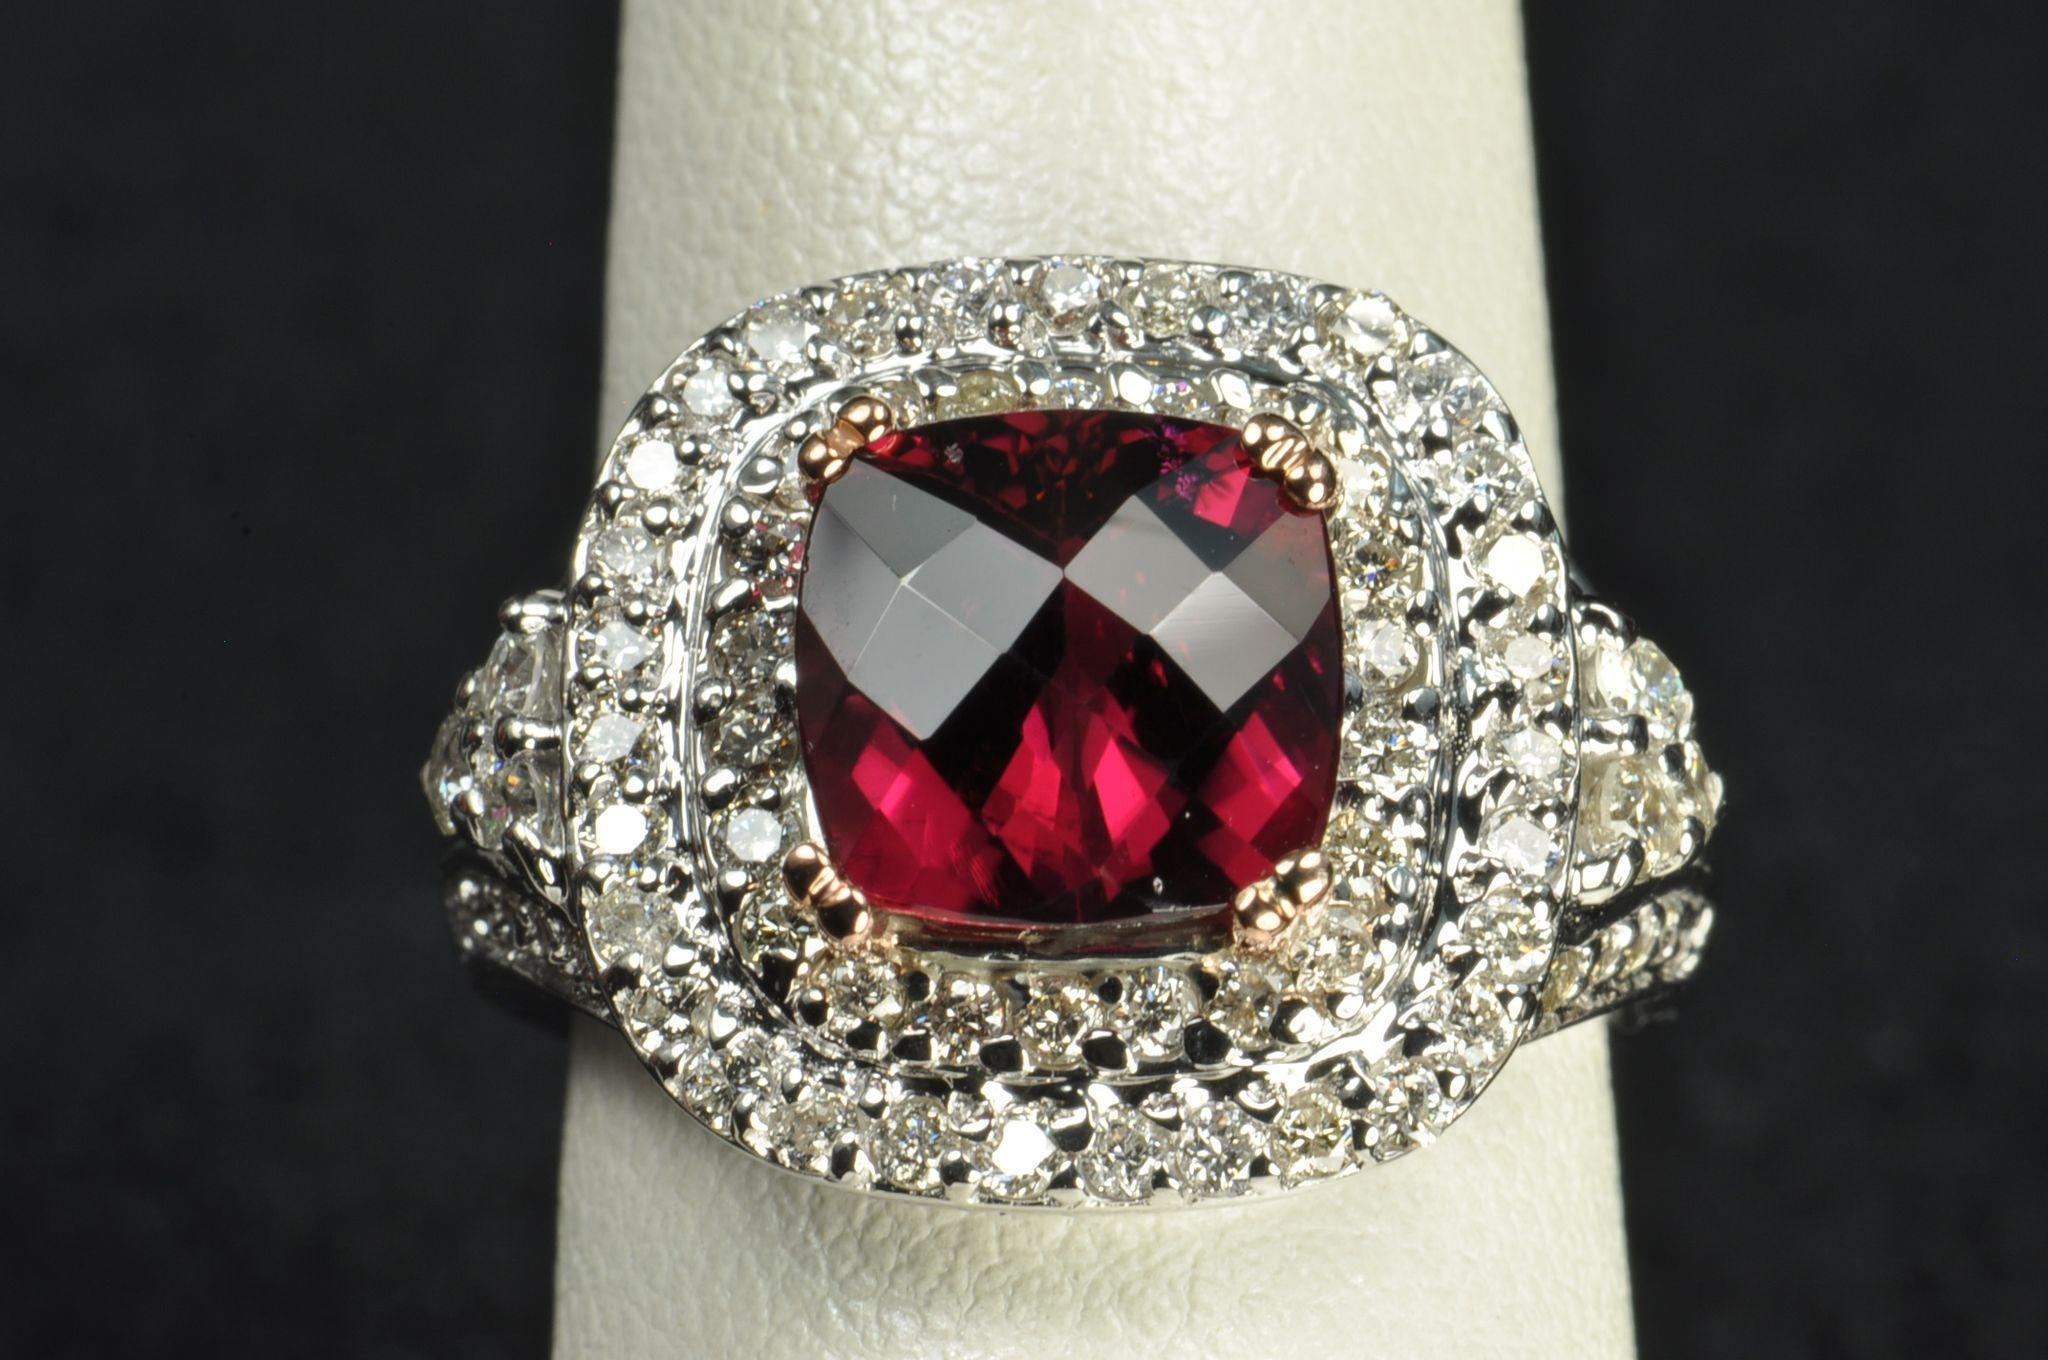 3 5 Carat Diamond And Rubellite Tourmaline Ring From